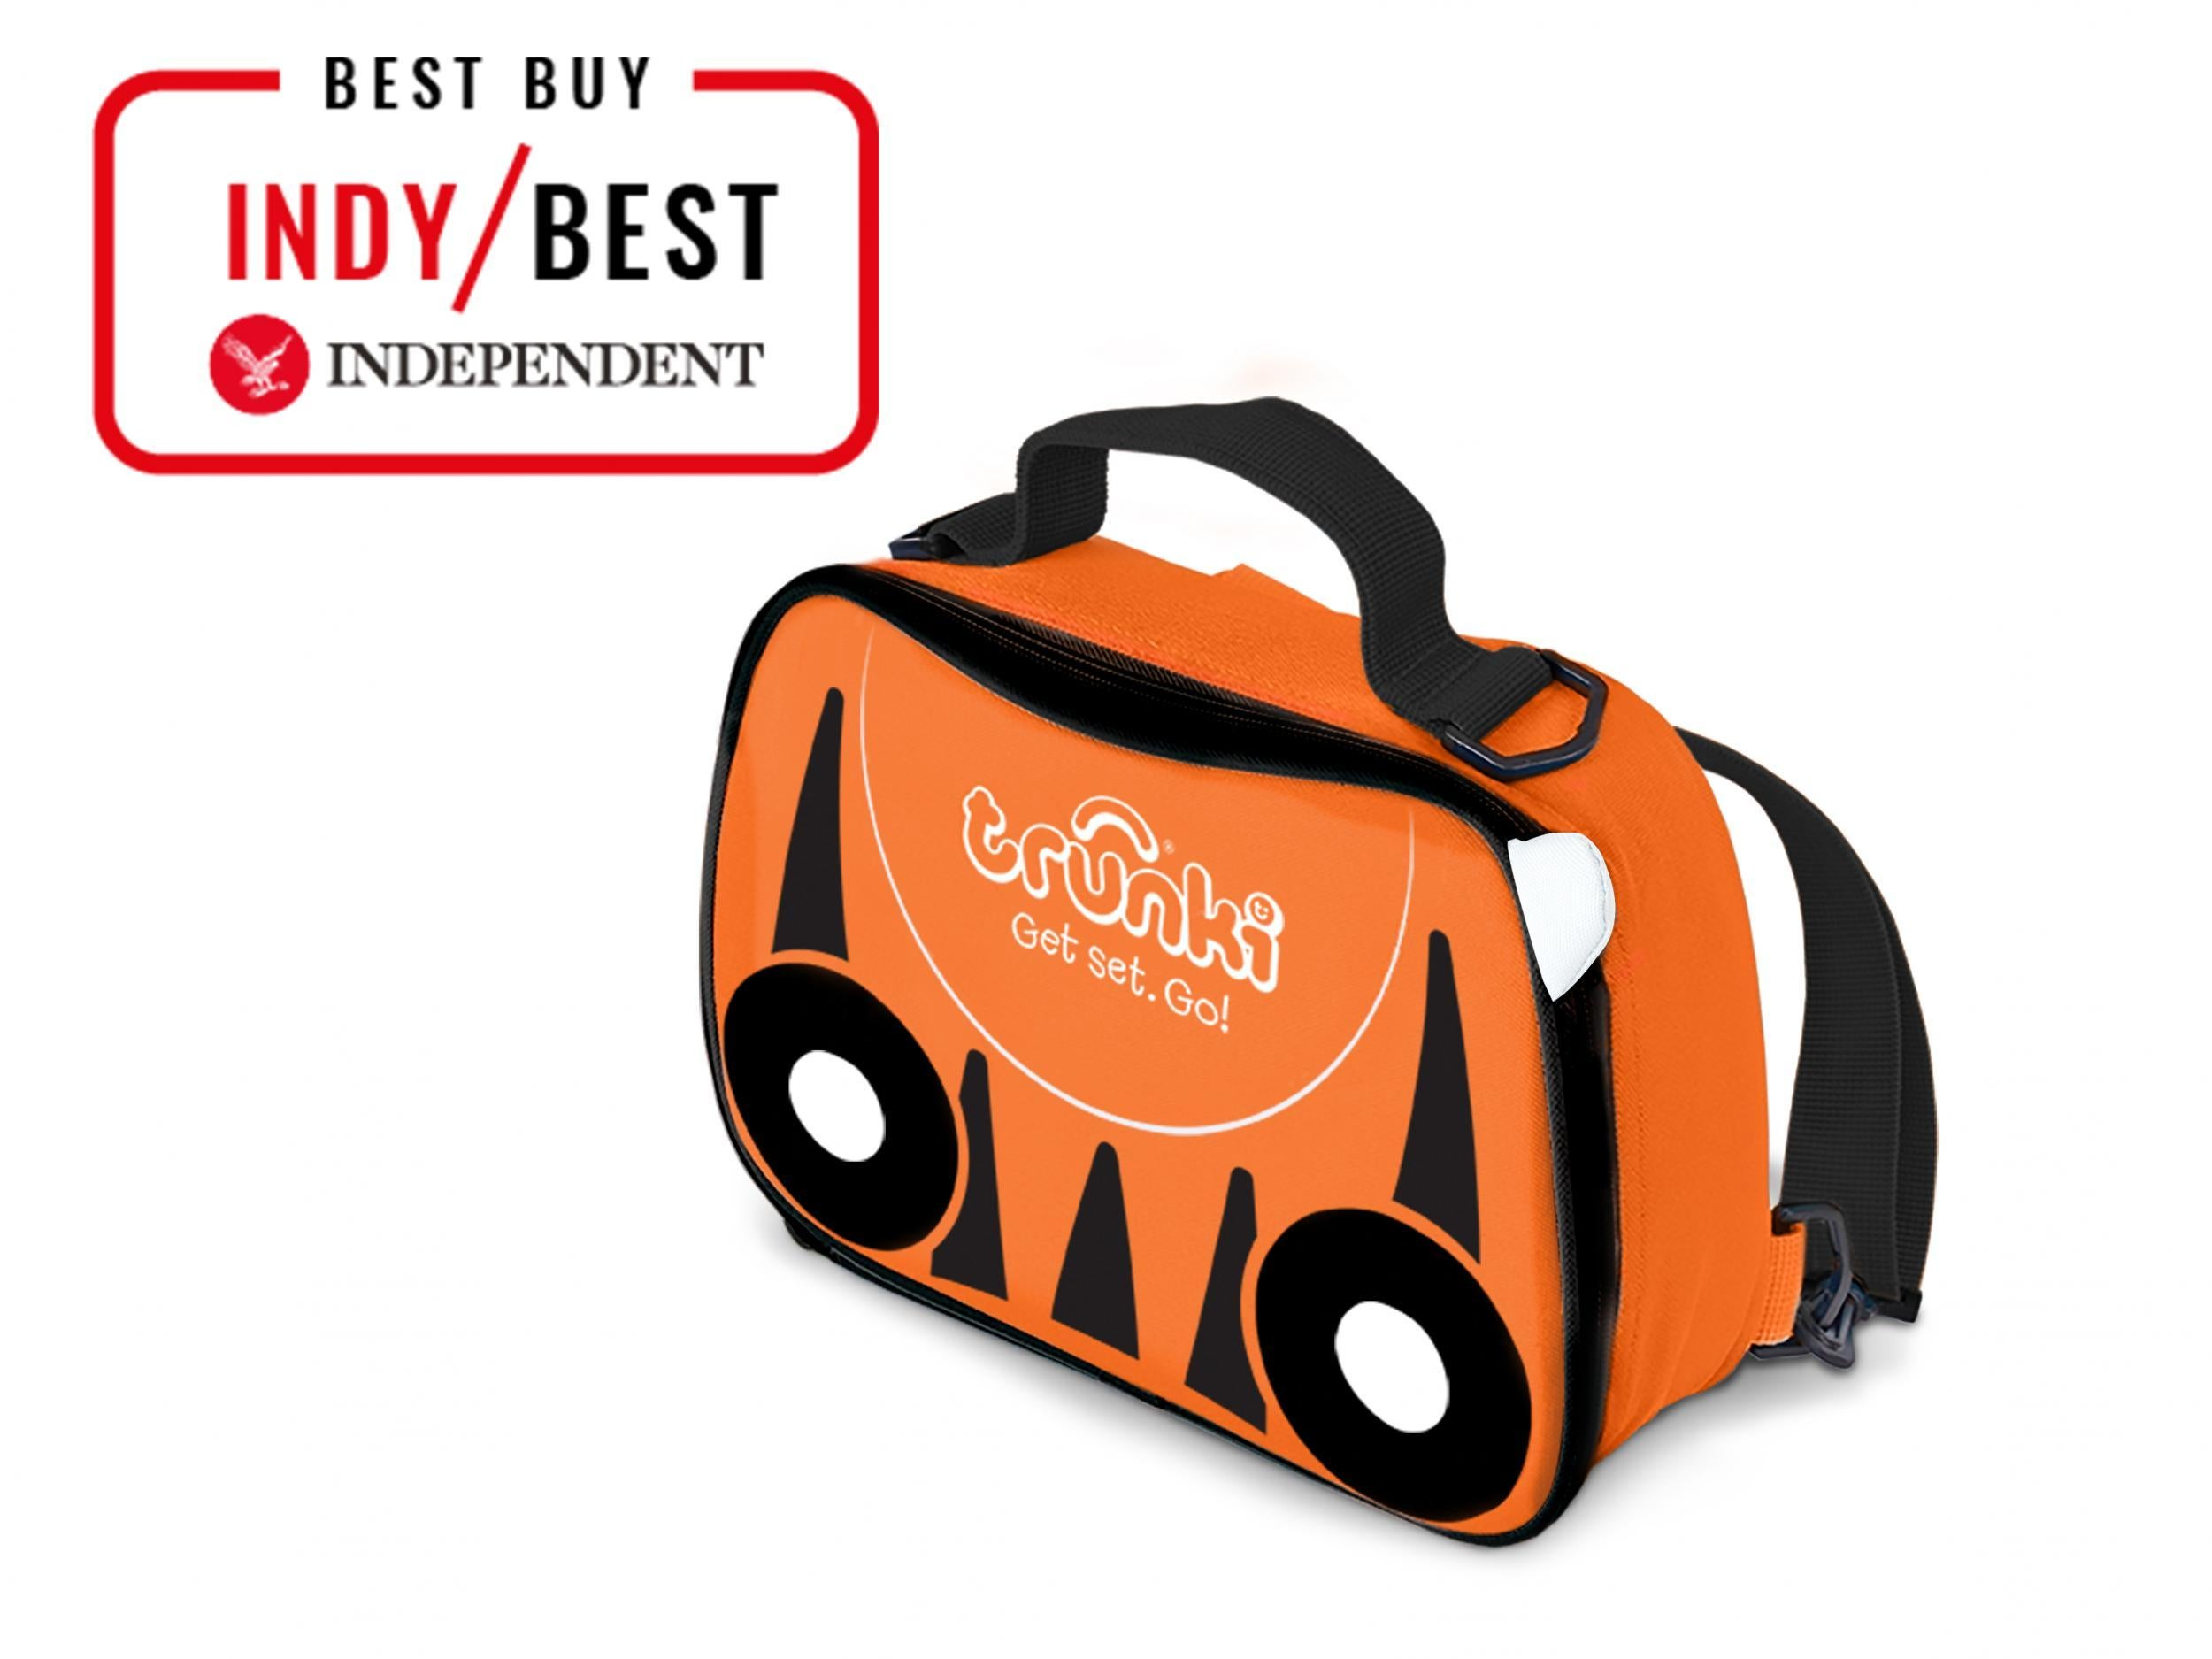 477b652f84ad35 Trunki revolutionised family travel with their rideable wheelie suitcase  and backpack booster seat and last year they launched a lunch bag range  which is ...